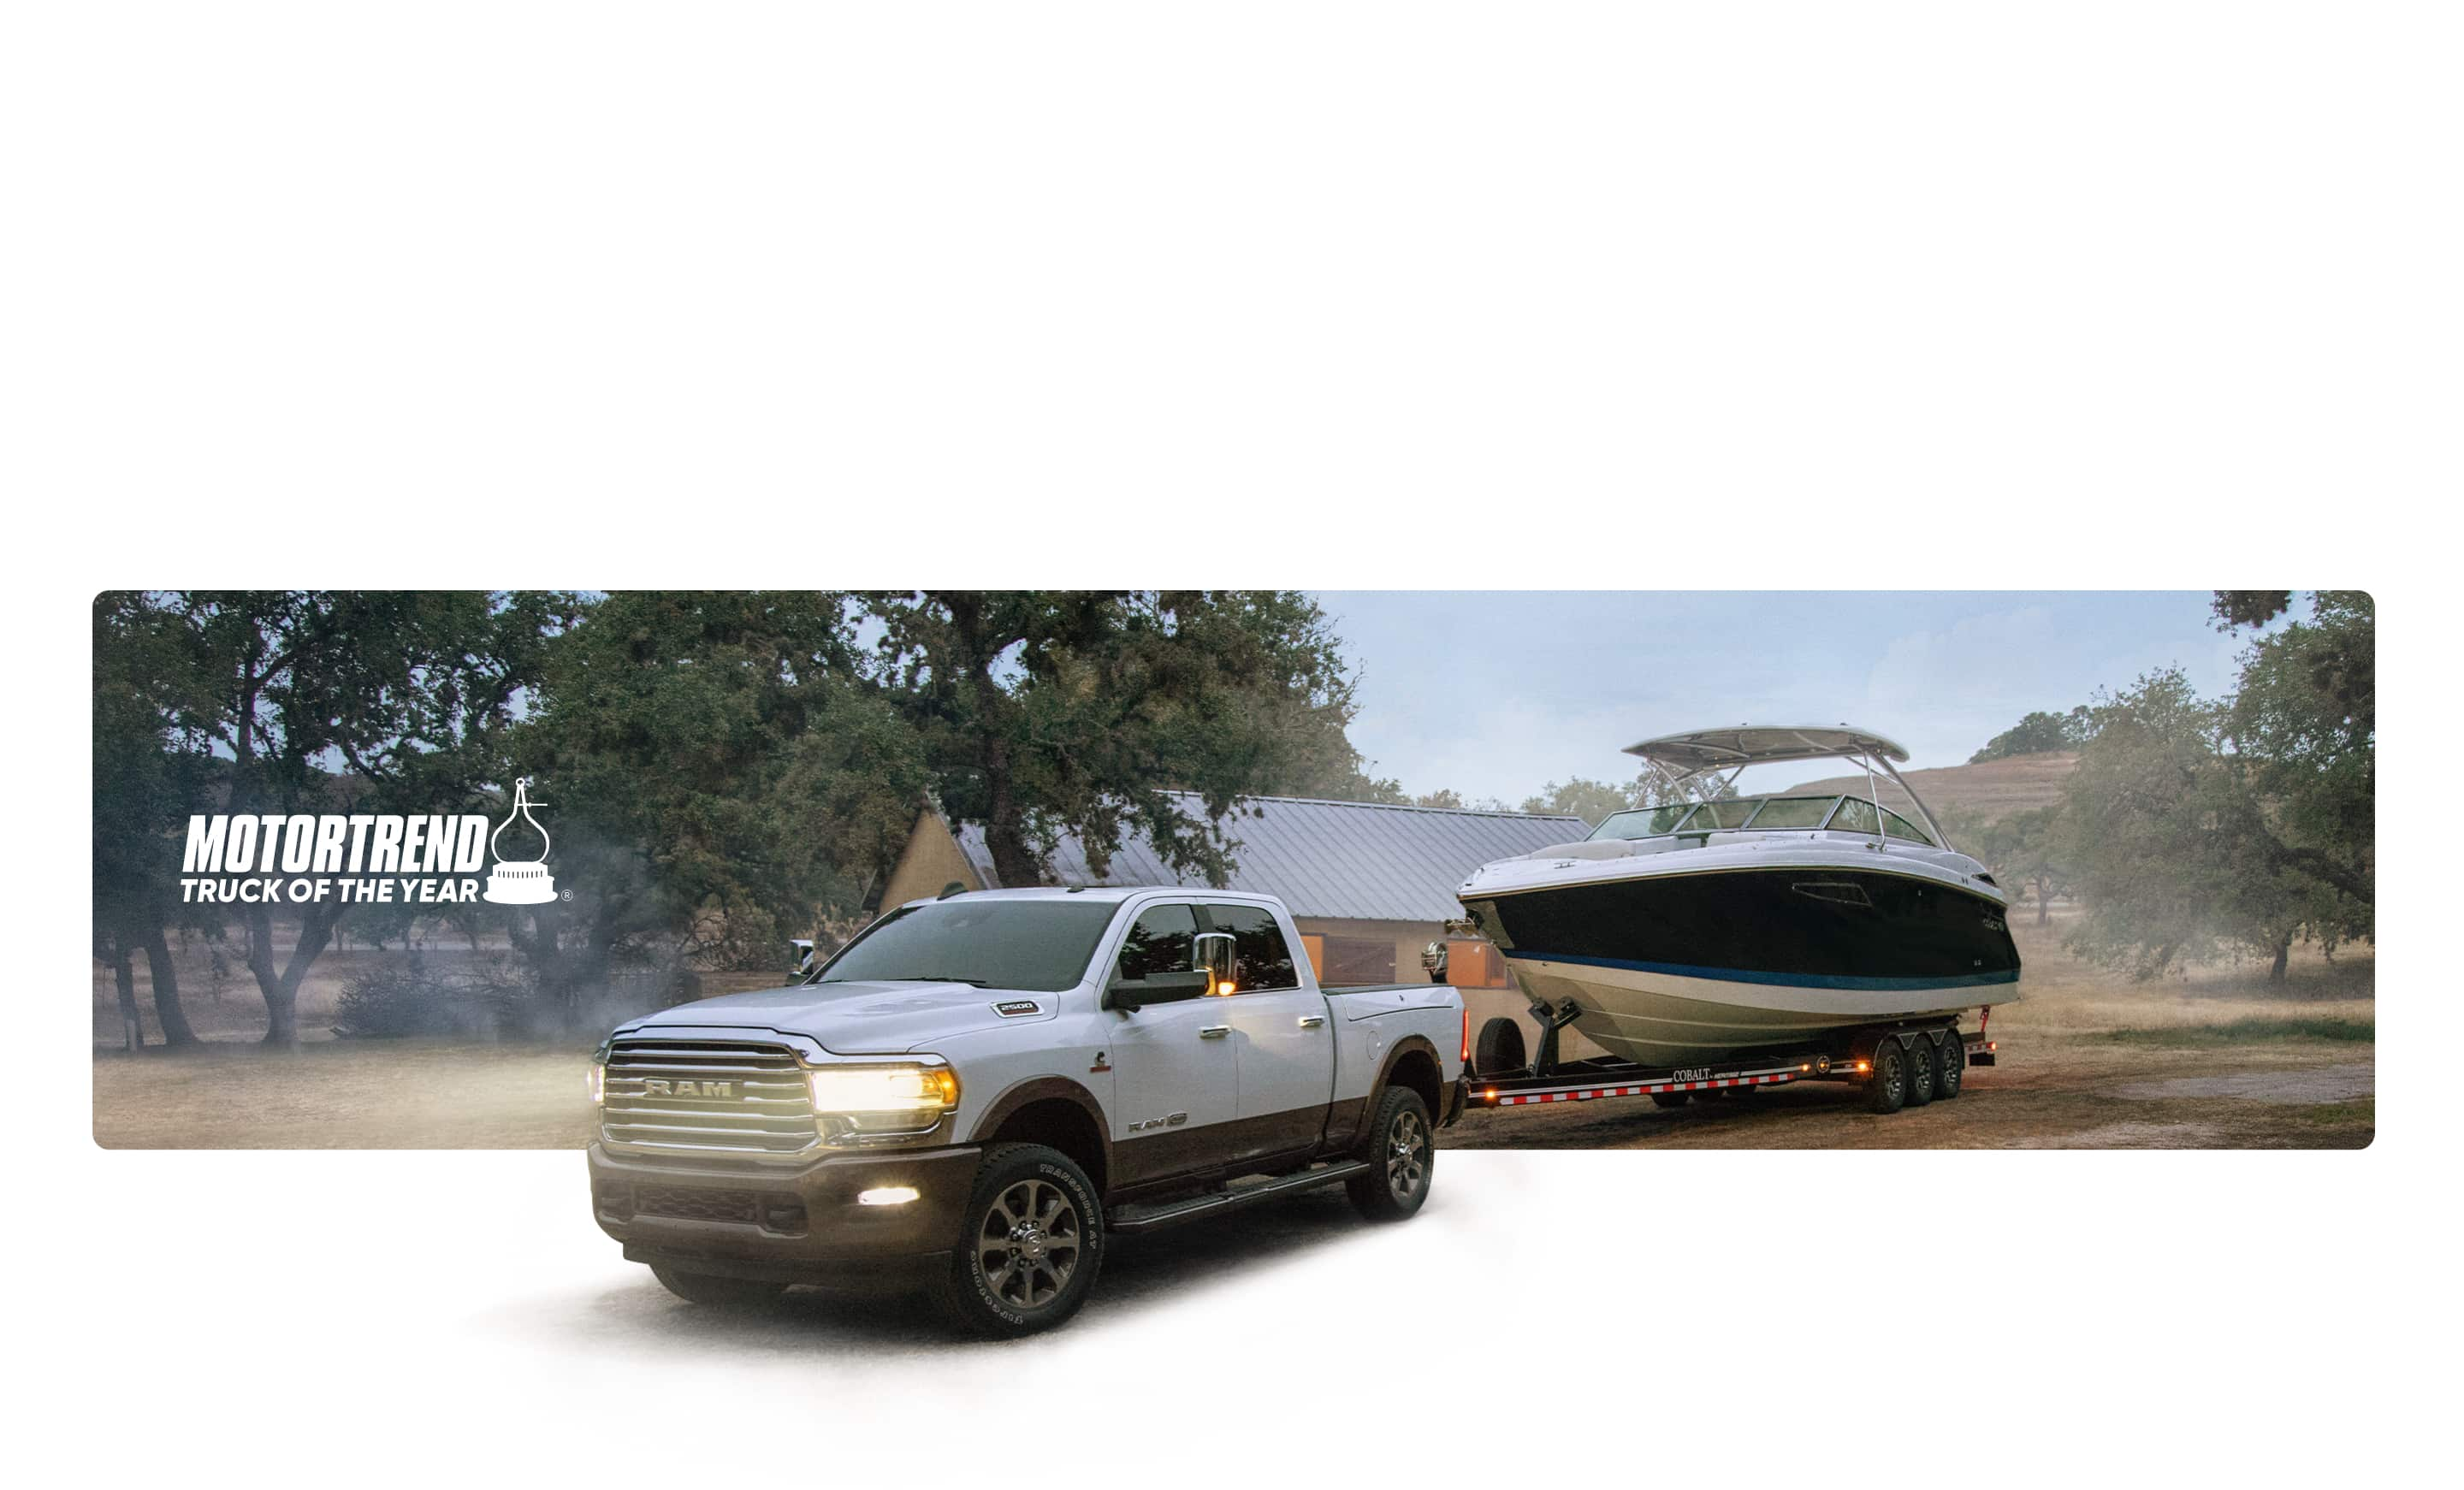 MotorTrend Truck of the Year. The 2020 Ram 2500 towing a boat.